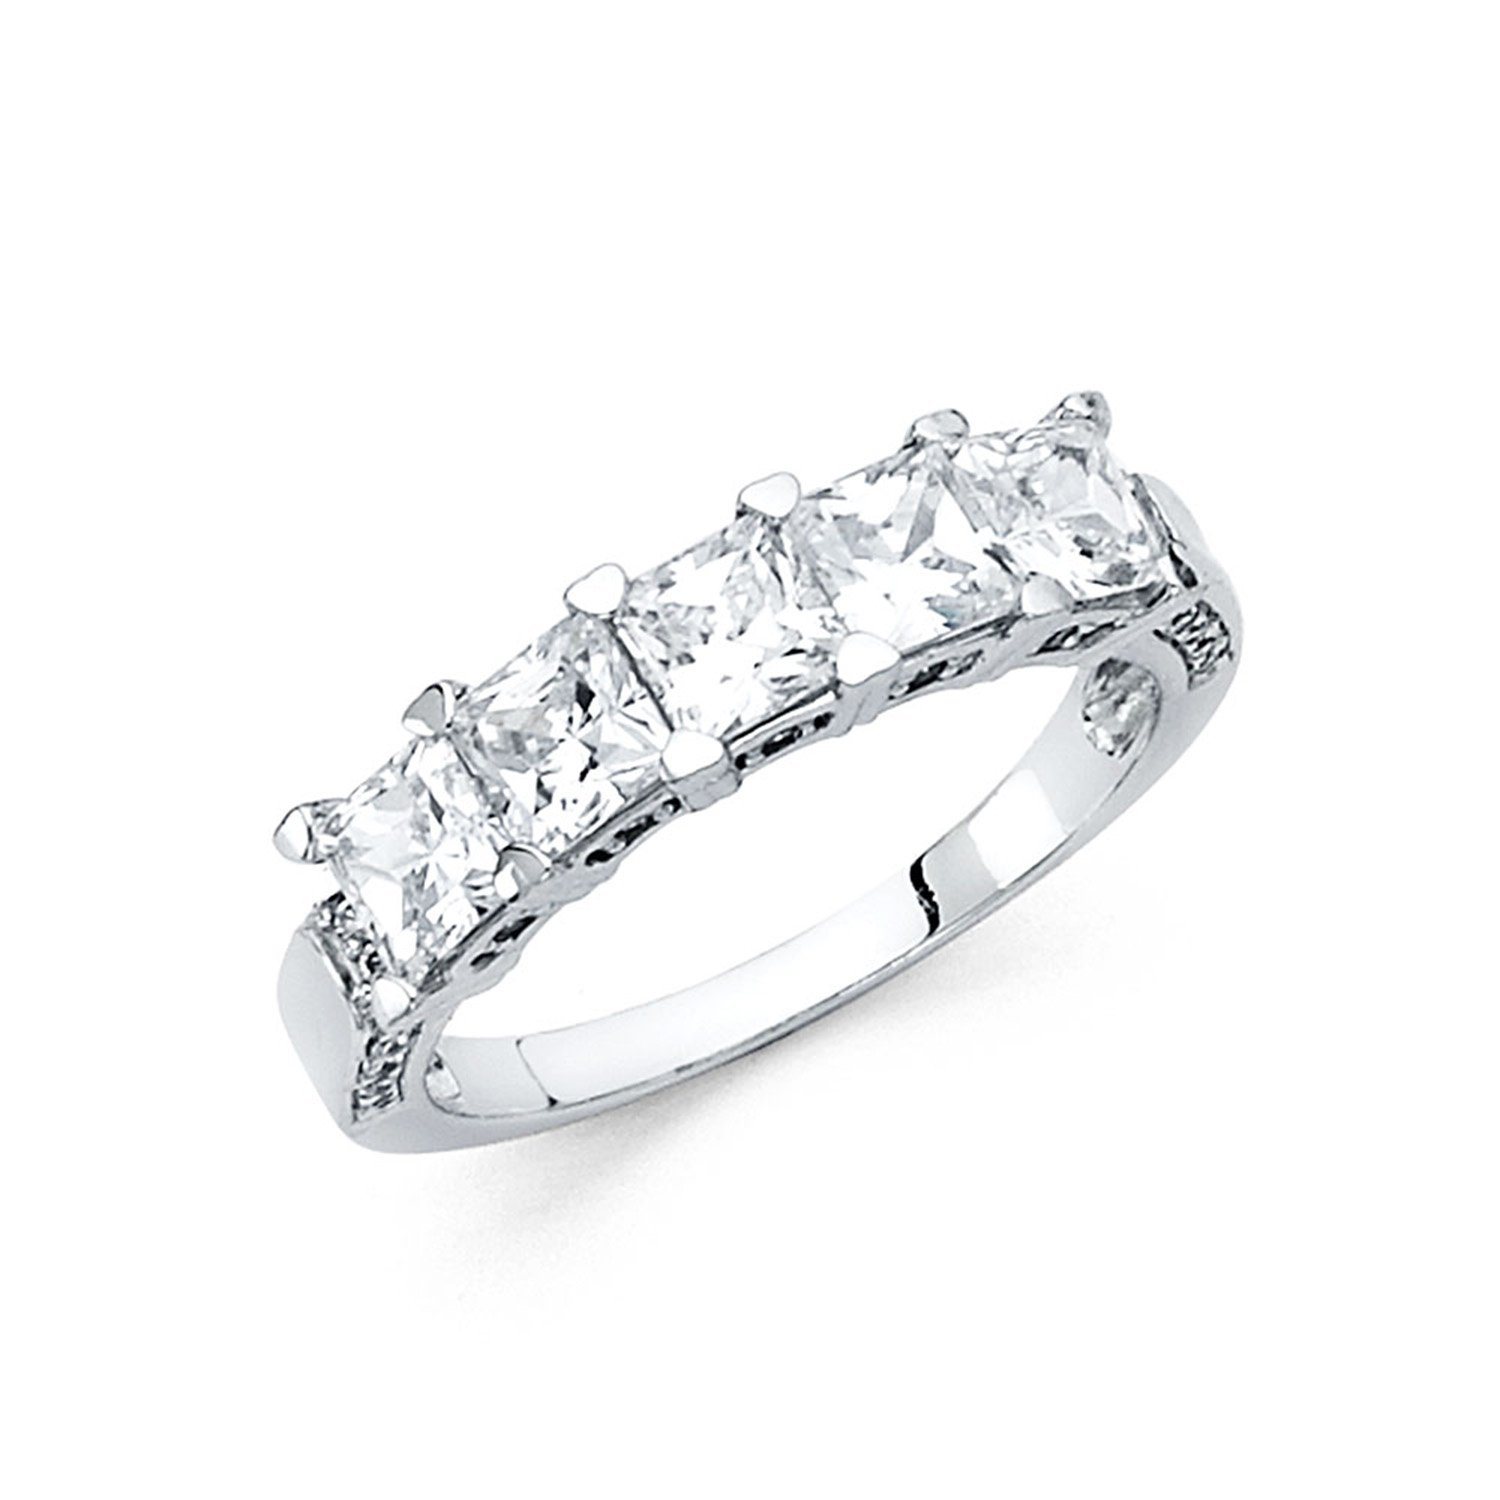 Size 7 - 3mm Solid 14K White Gold Princess Cut Classic Traditional Wedding Band Ring (2.0 cttw.)